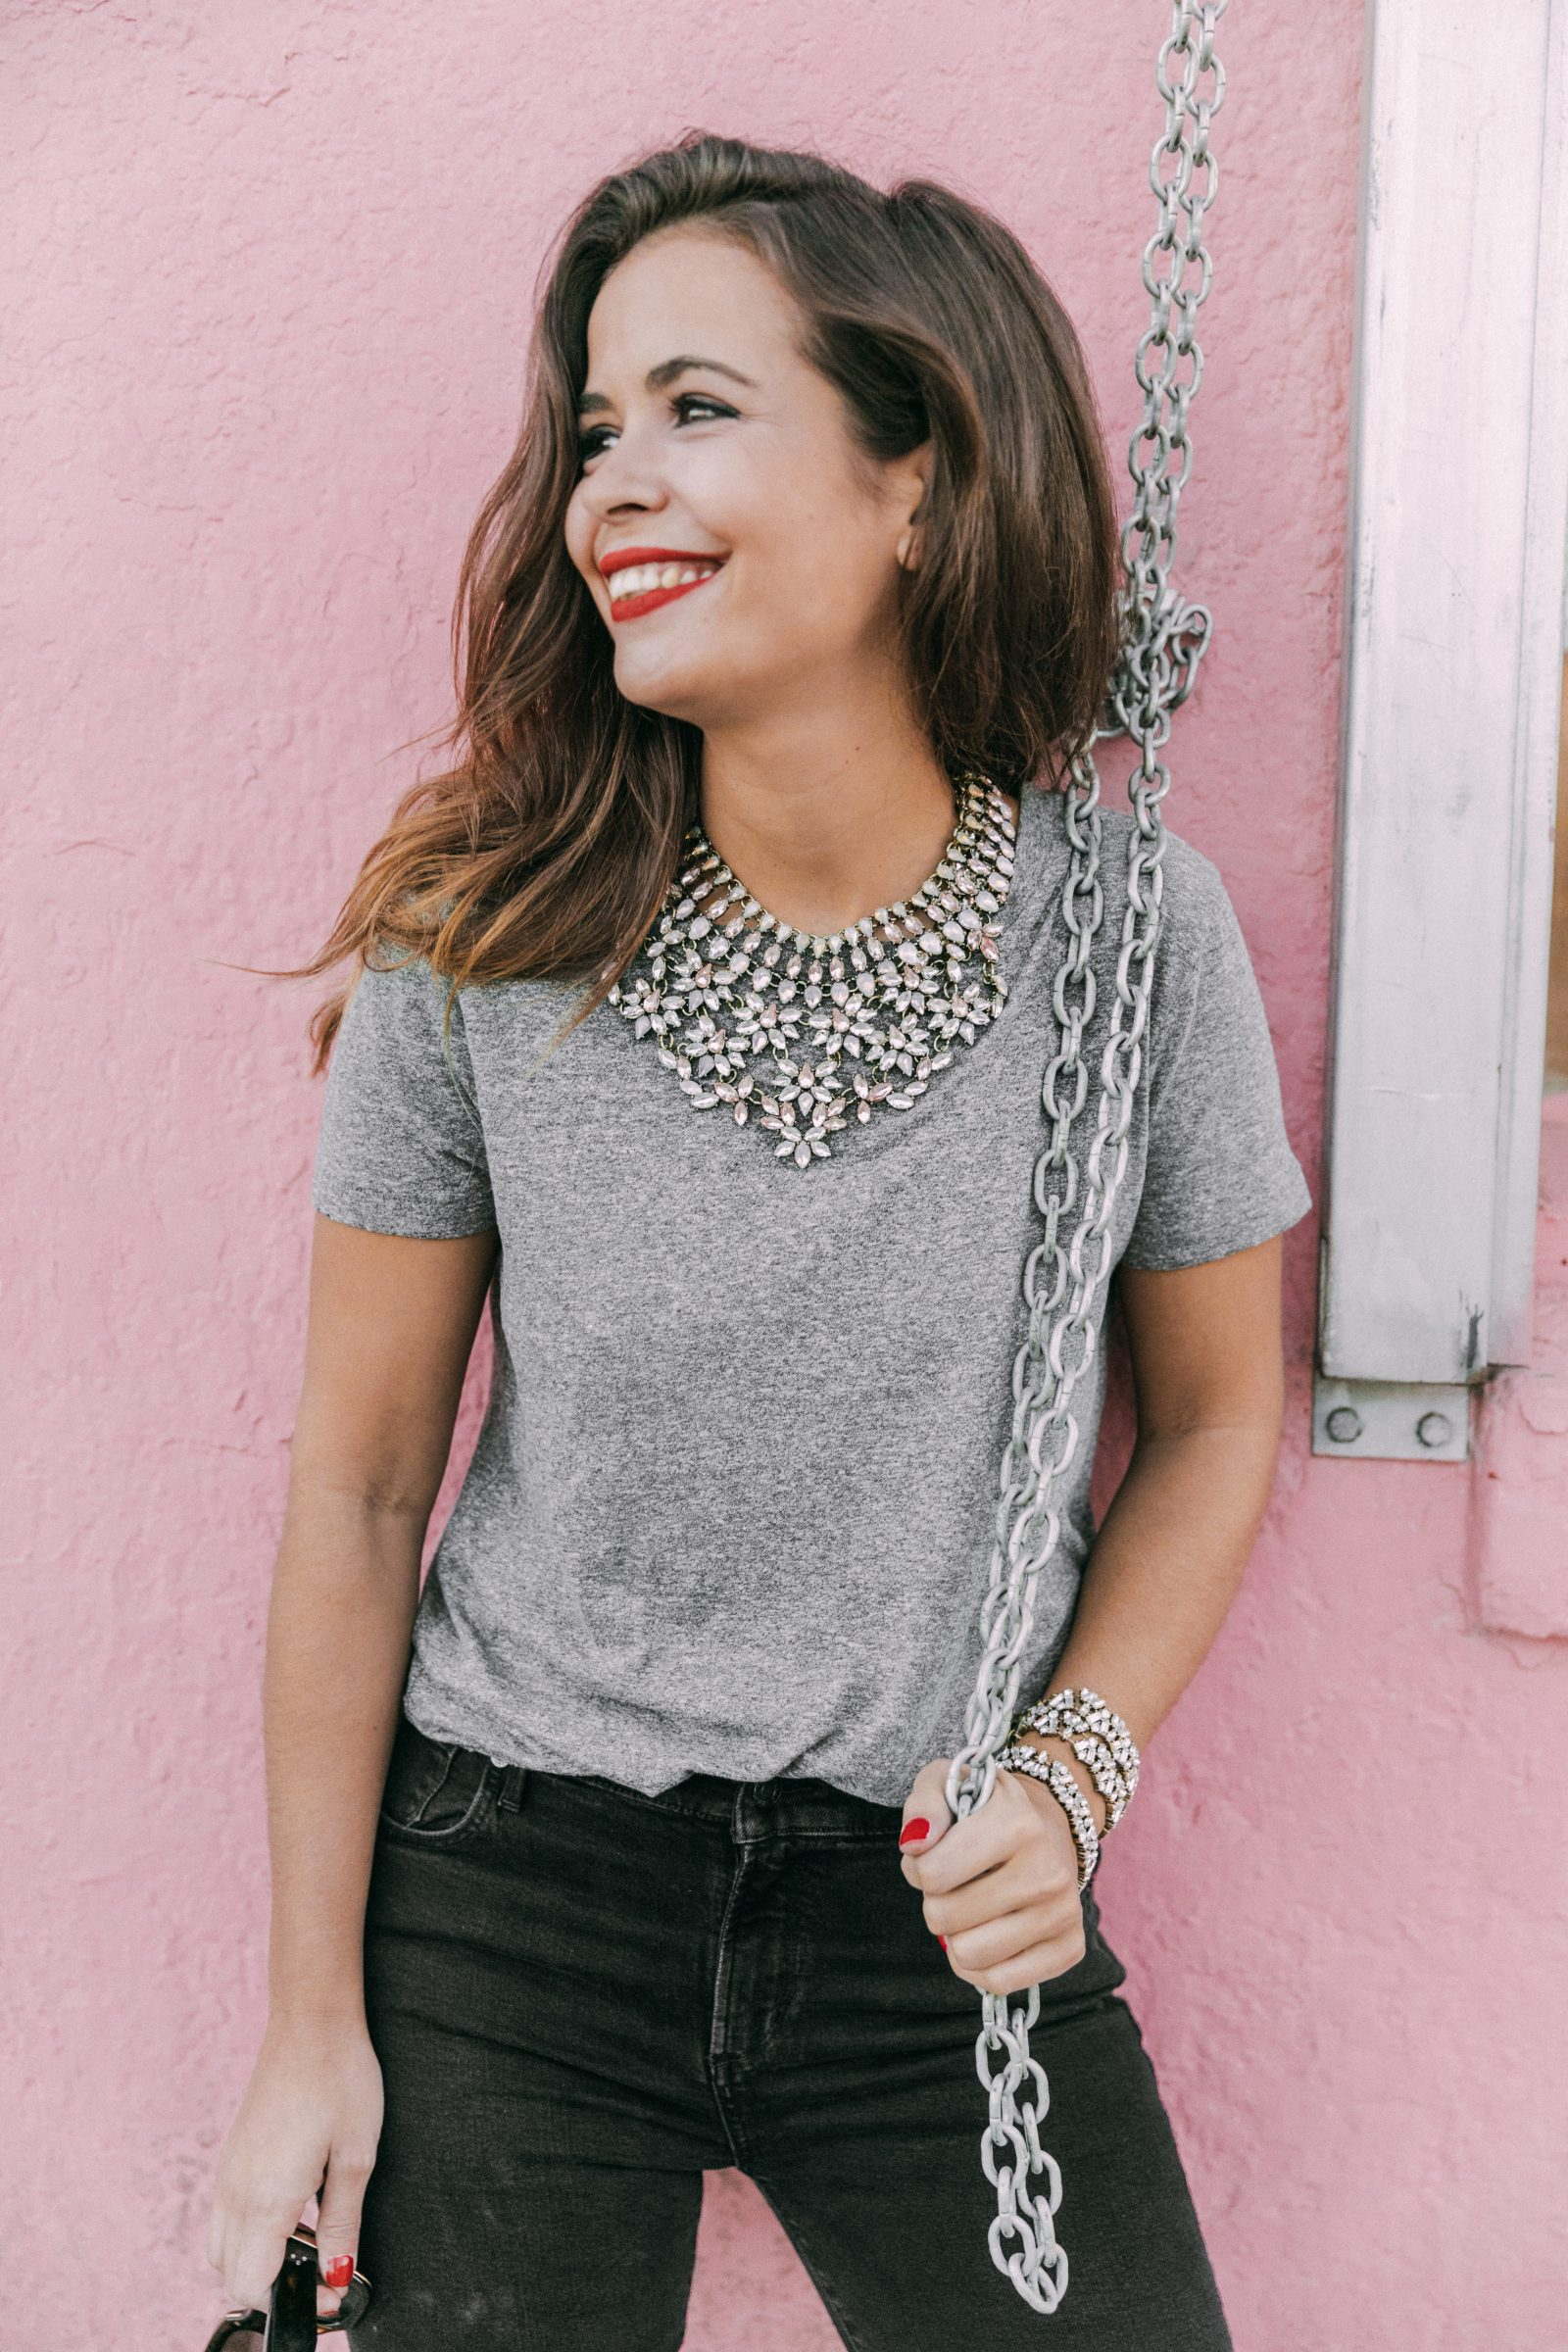 grey_top-black_jeans-statement_necklaces-downtown-black-boots-bauble_bar-outifit-street_style-outfits-collage_vintage-53